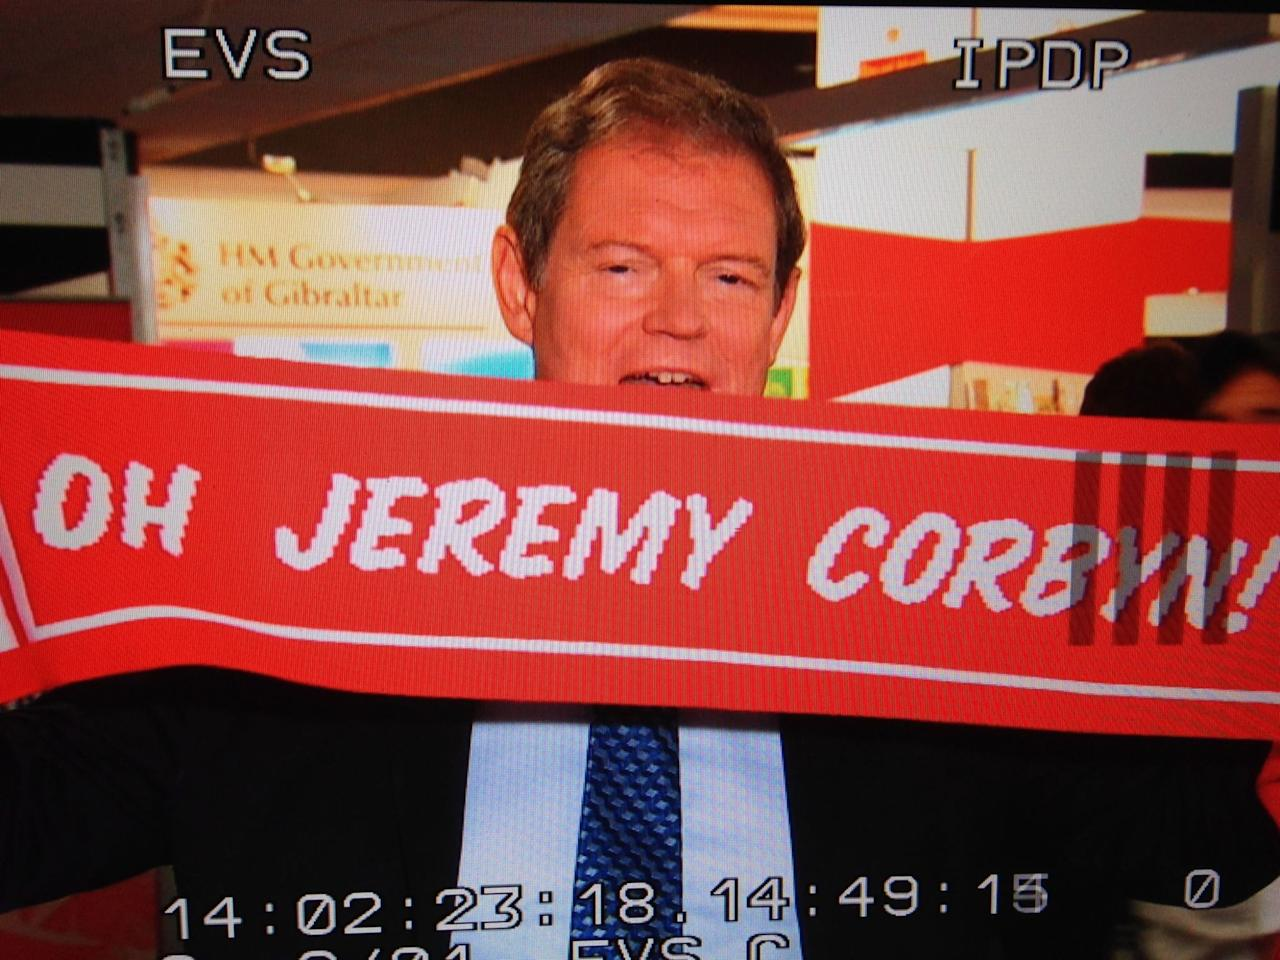 <p>Gone are the days of donning football scarves in public – in a few places they've even been banned, to stop confrontation. However, the Labour lot are clearly one step ahead of the rest here with their 'Oh Jeremy Corbyn' scarf. What better way to keep warm and show your political affiliation at the same time? (Sky News) </p>